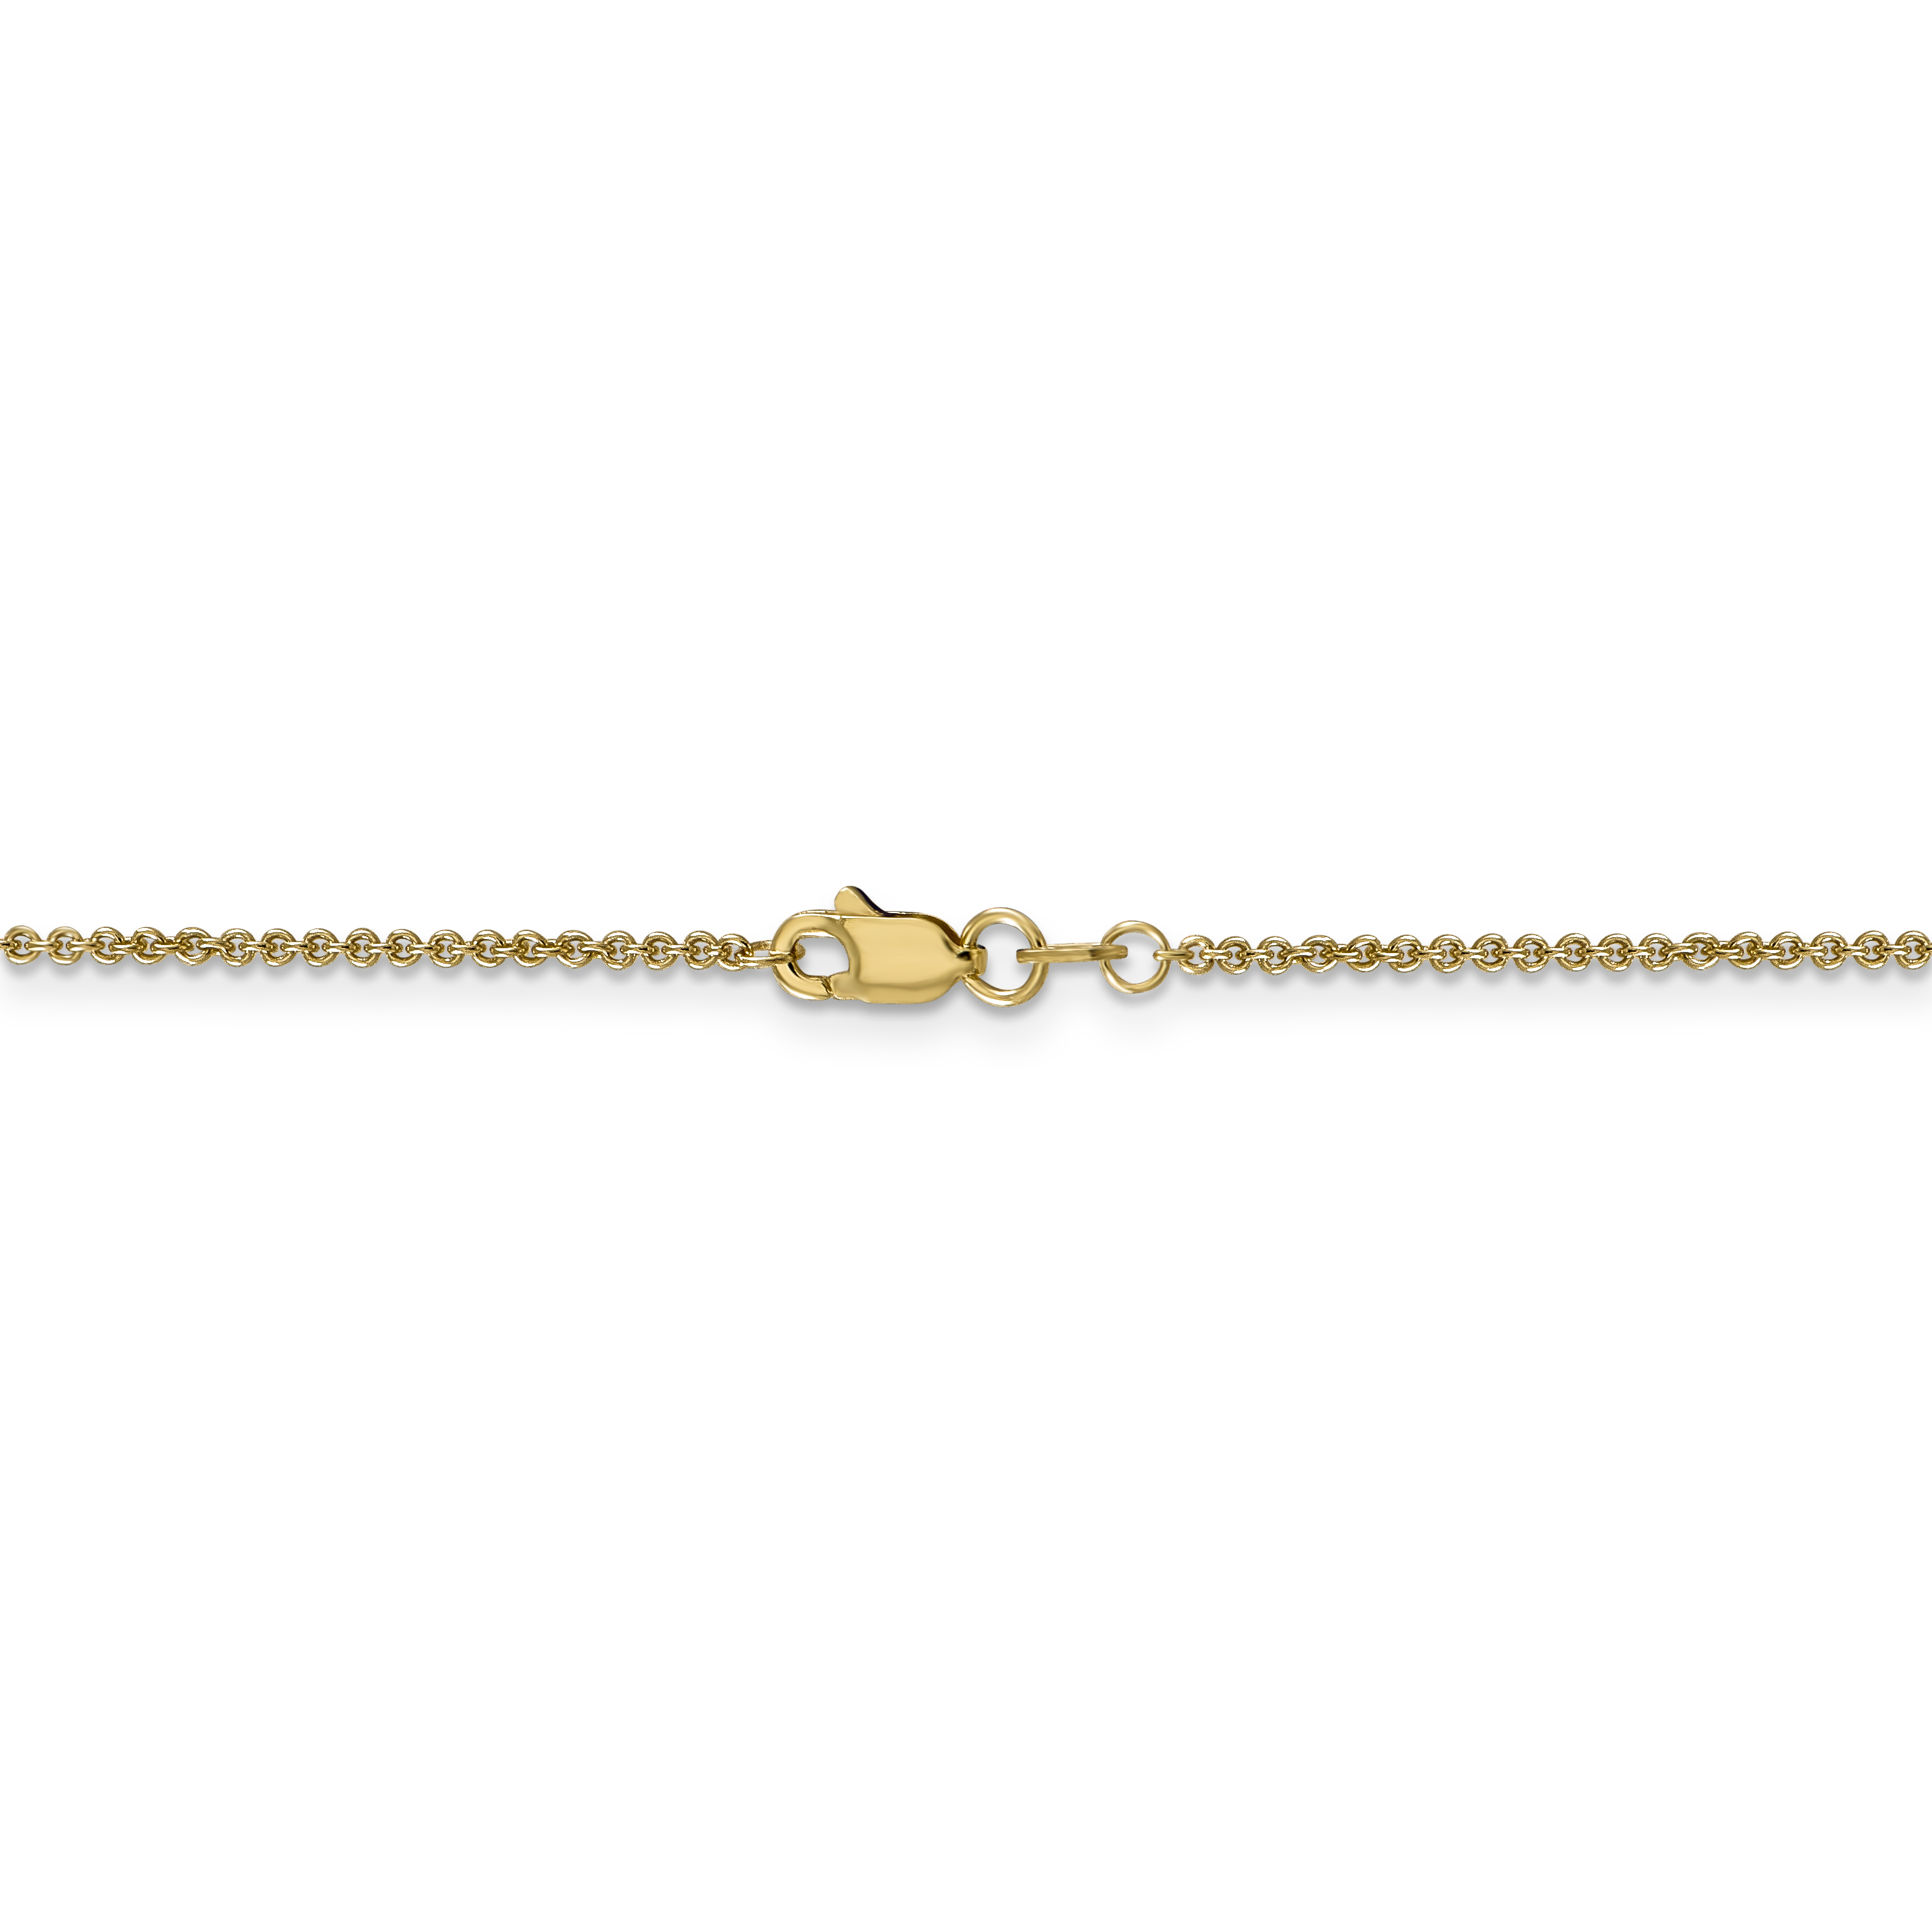 14k Yellow Gold 1.5mm Link Cable Chain Necklace 30 Inch Pendant Charm Fine Jewelry Gifts For Women For Her - image 2 of 5